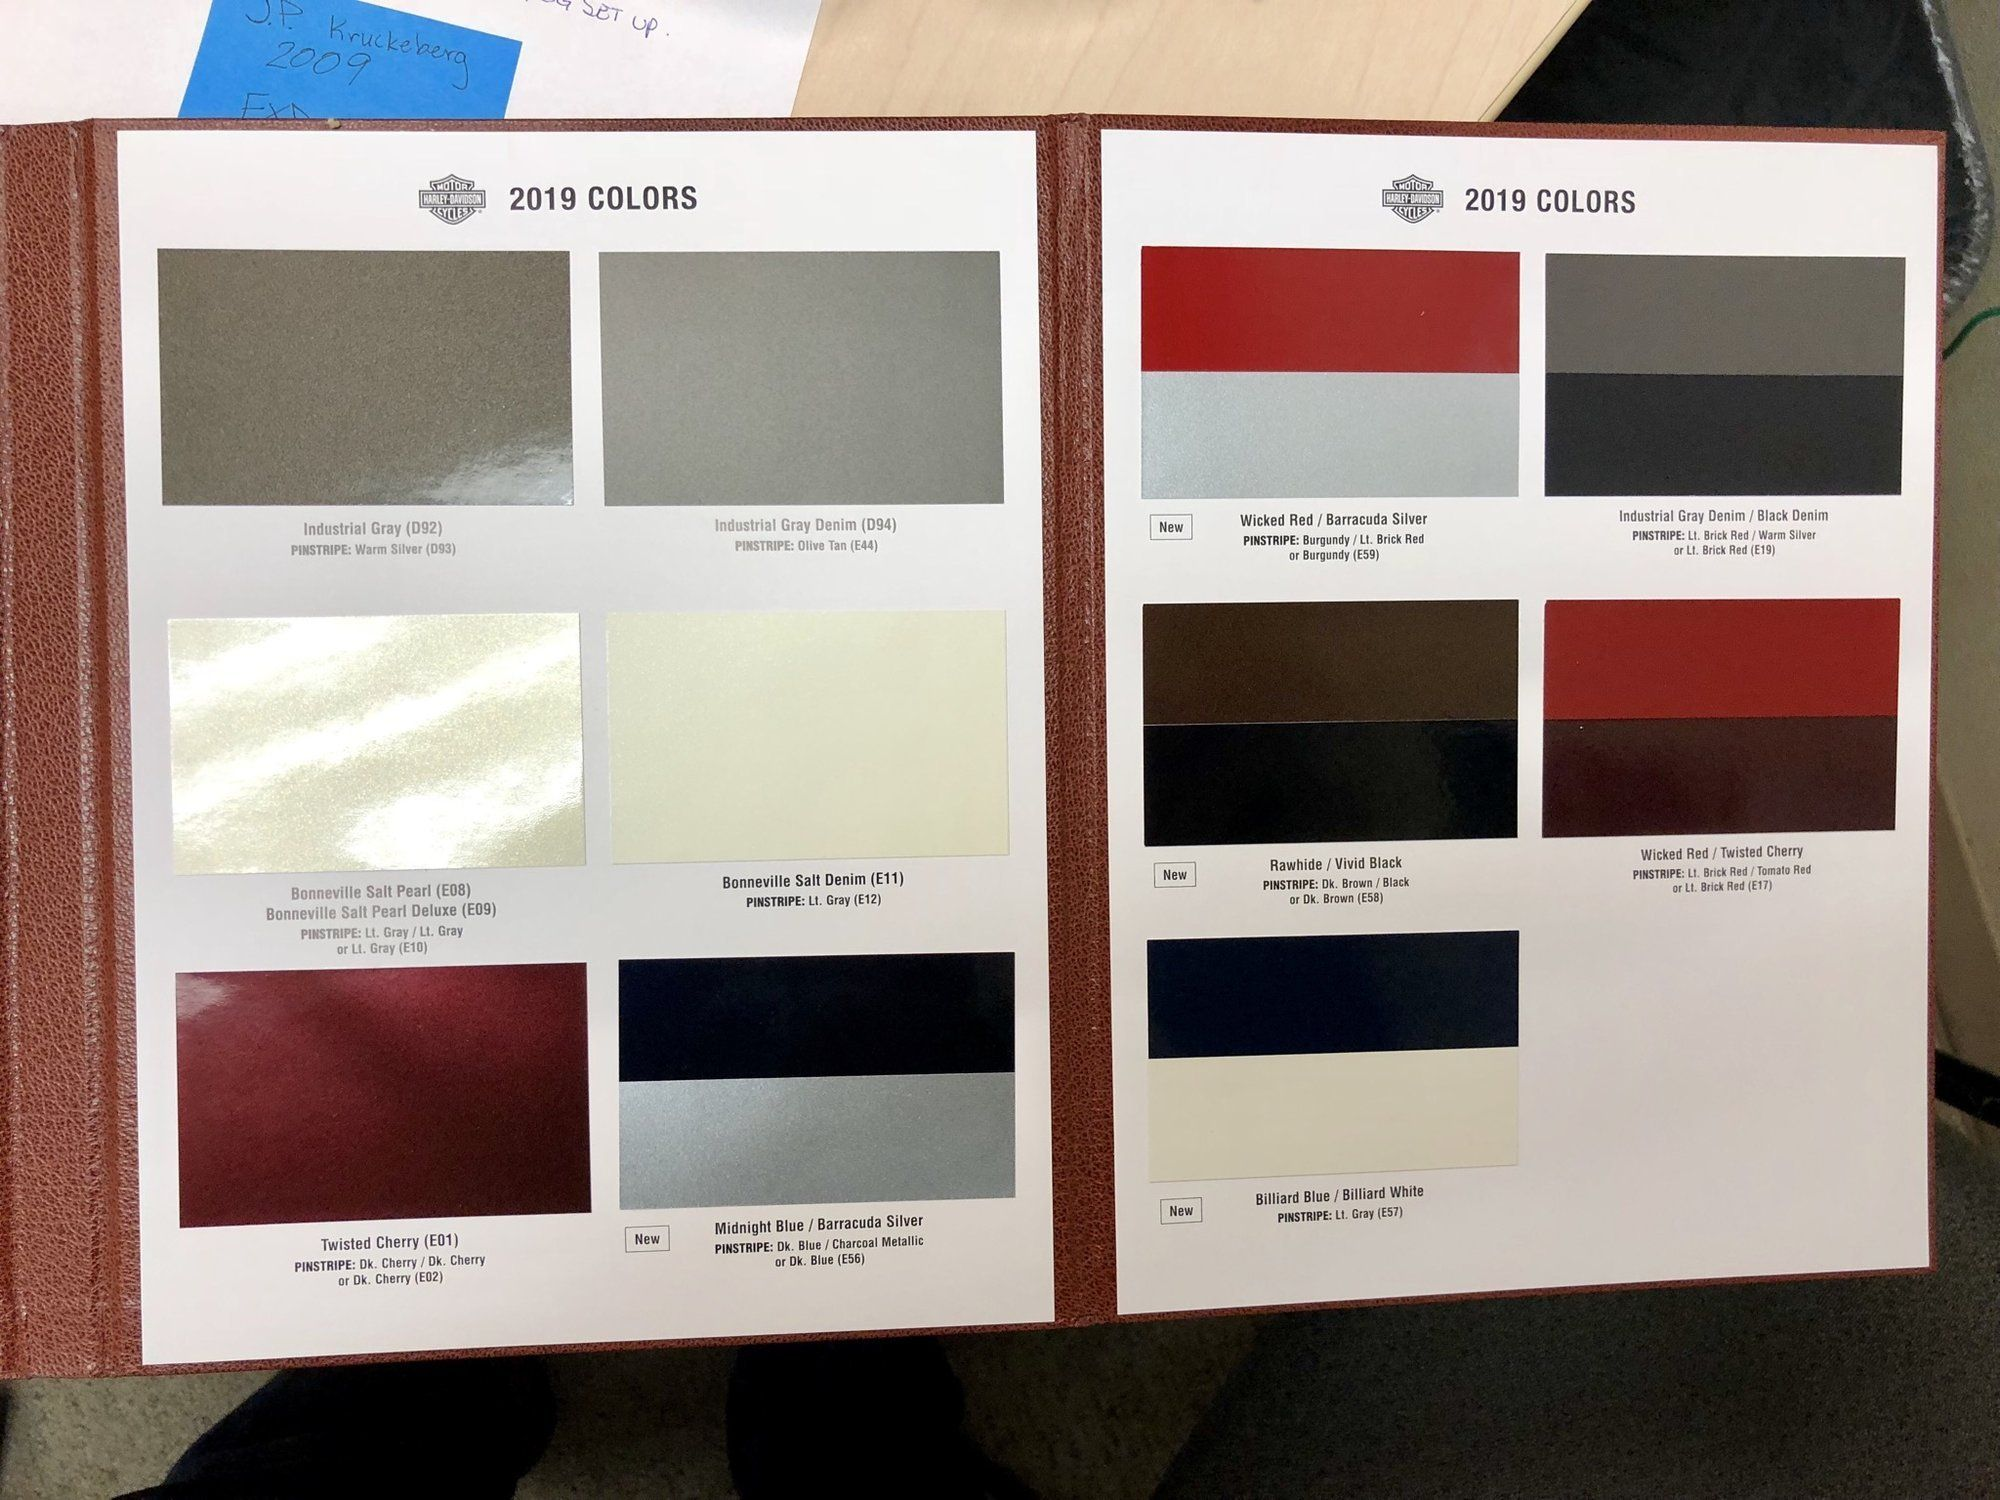 2020 Harley Color Chart.2019 Harley Davidson Color Chart Price And Review From I